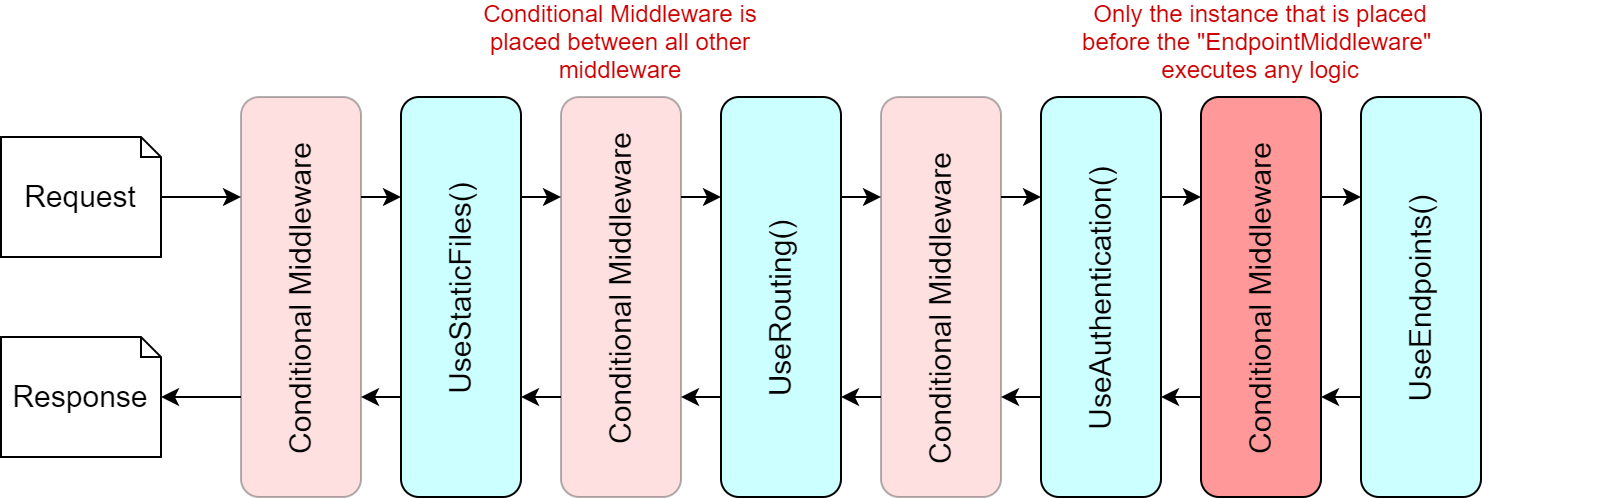 Conditional middleware is added between all the other middleware, but only executes its logic in one location